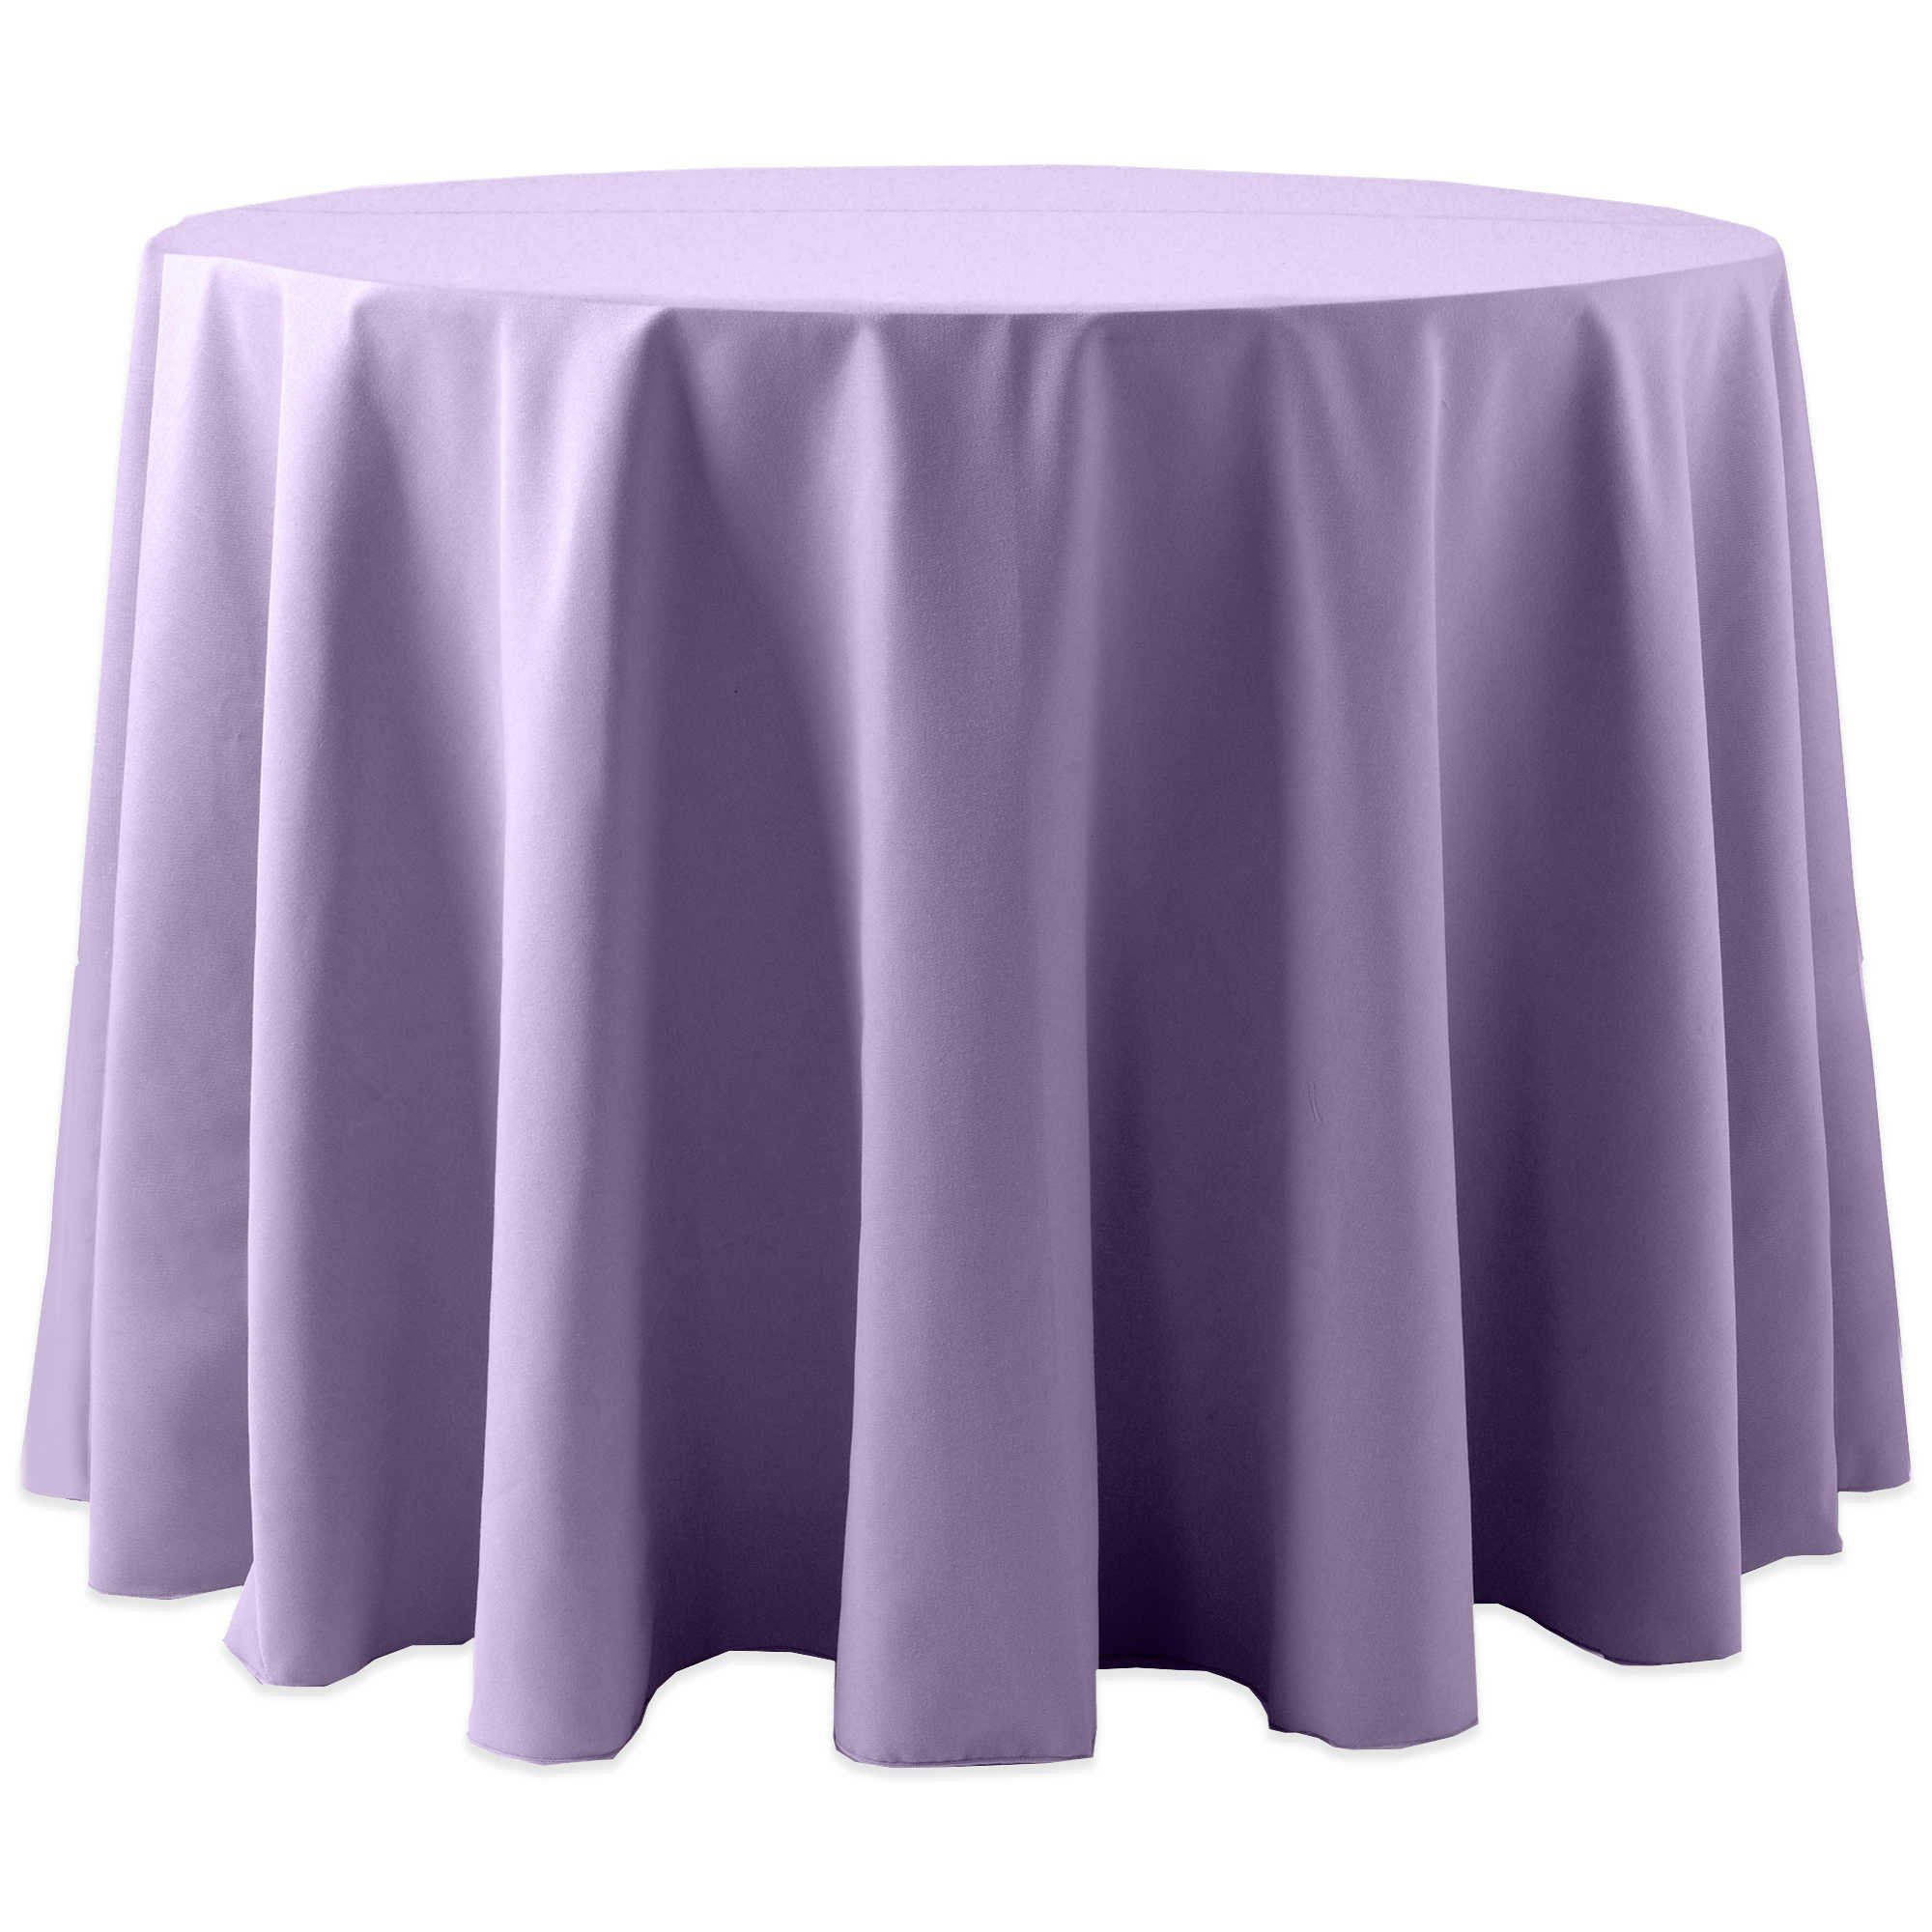 Ultimate Textile (2 Pack) Cotton Feel Spun Polyester 70 Inch Round  Tablecloth